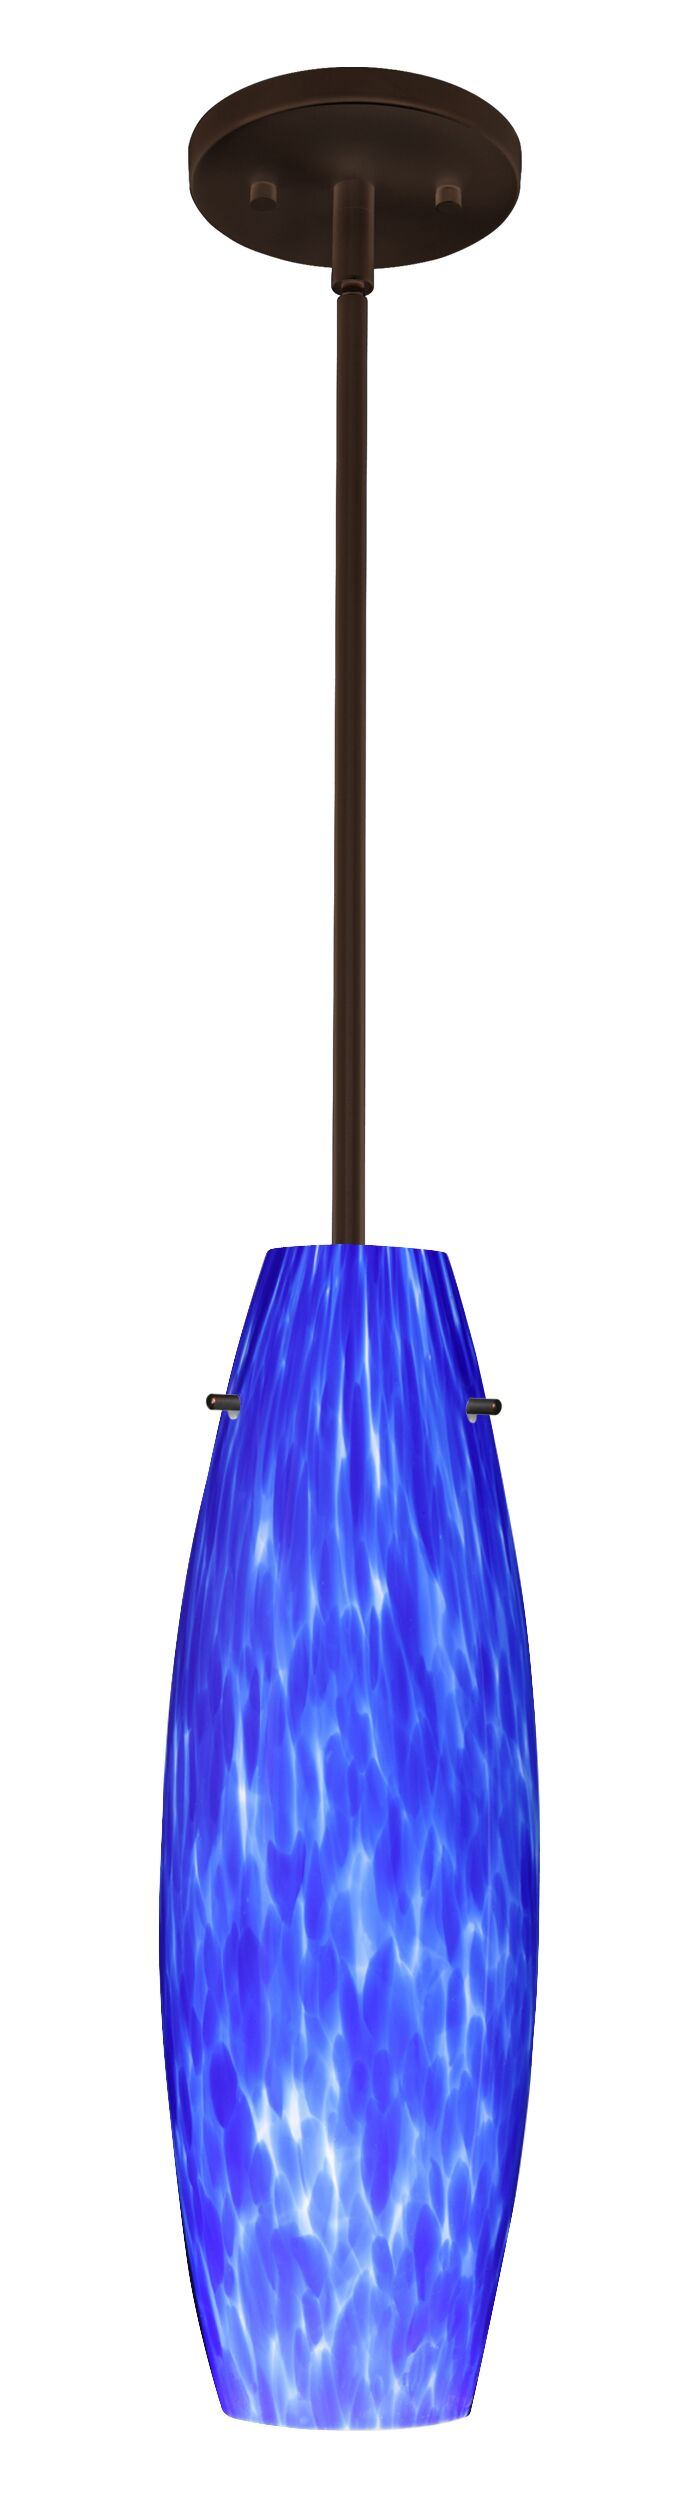 Tara 1-Light Cylinder Pendant Finish: Bronze, Glass Shade: Blue Cloud, Bulb Type: LED